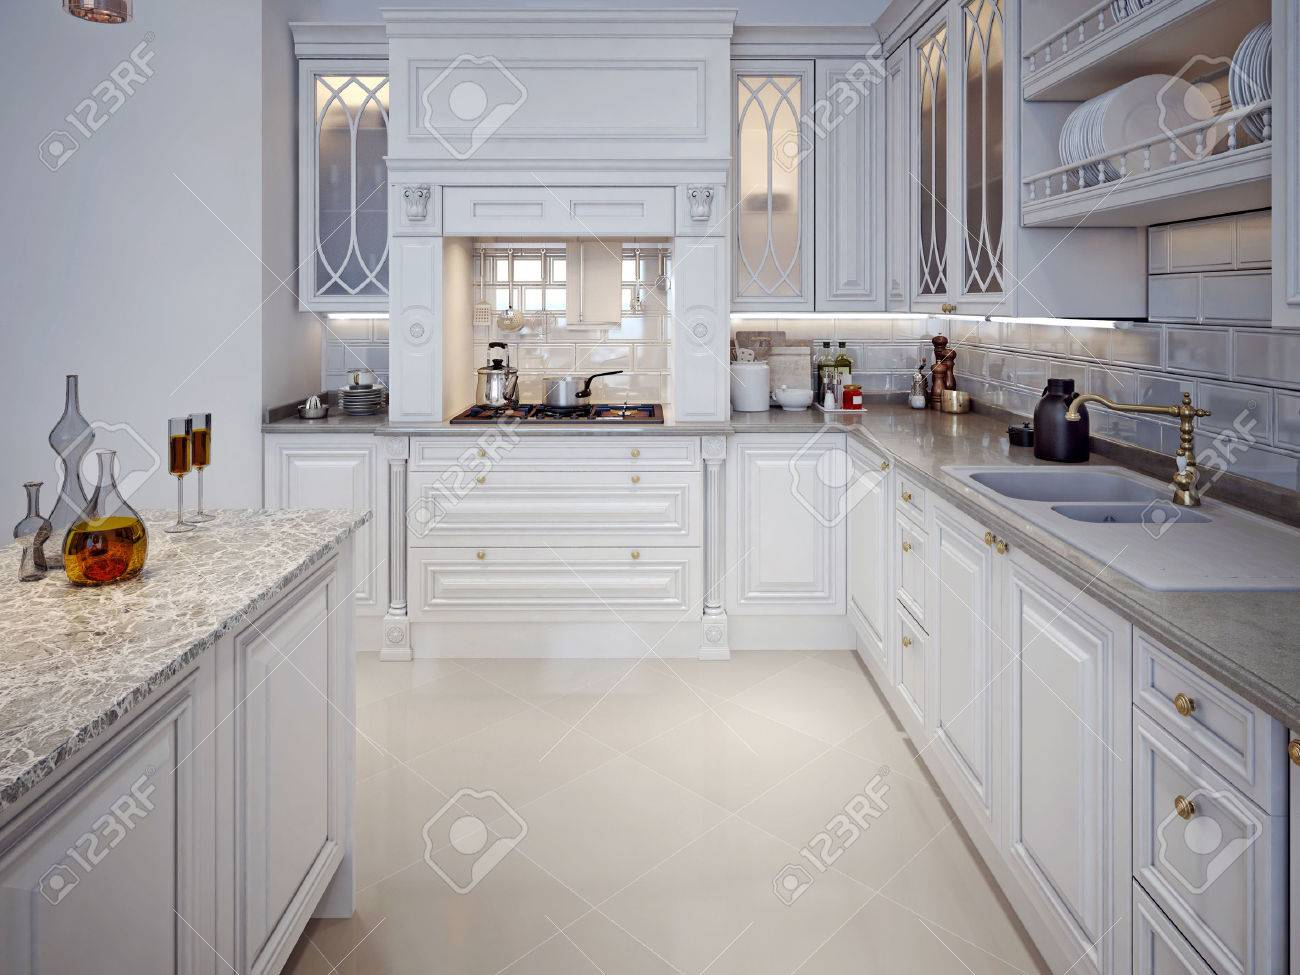 luxury white kitchen with a classic style 3d render stock photo 47512594 - Luxury White Kitchens